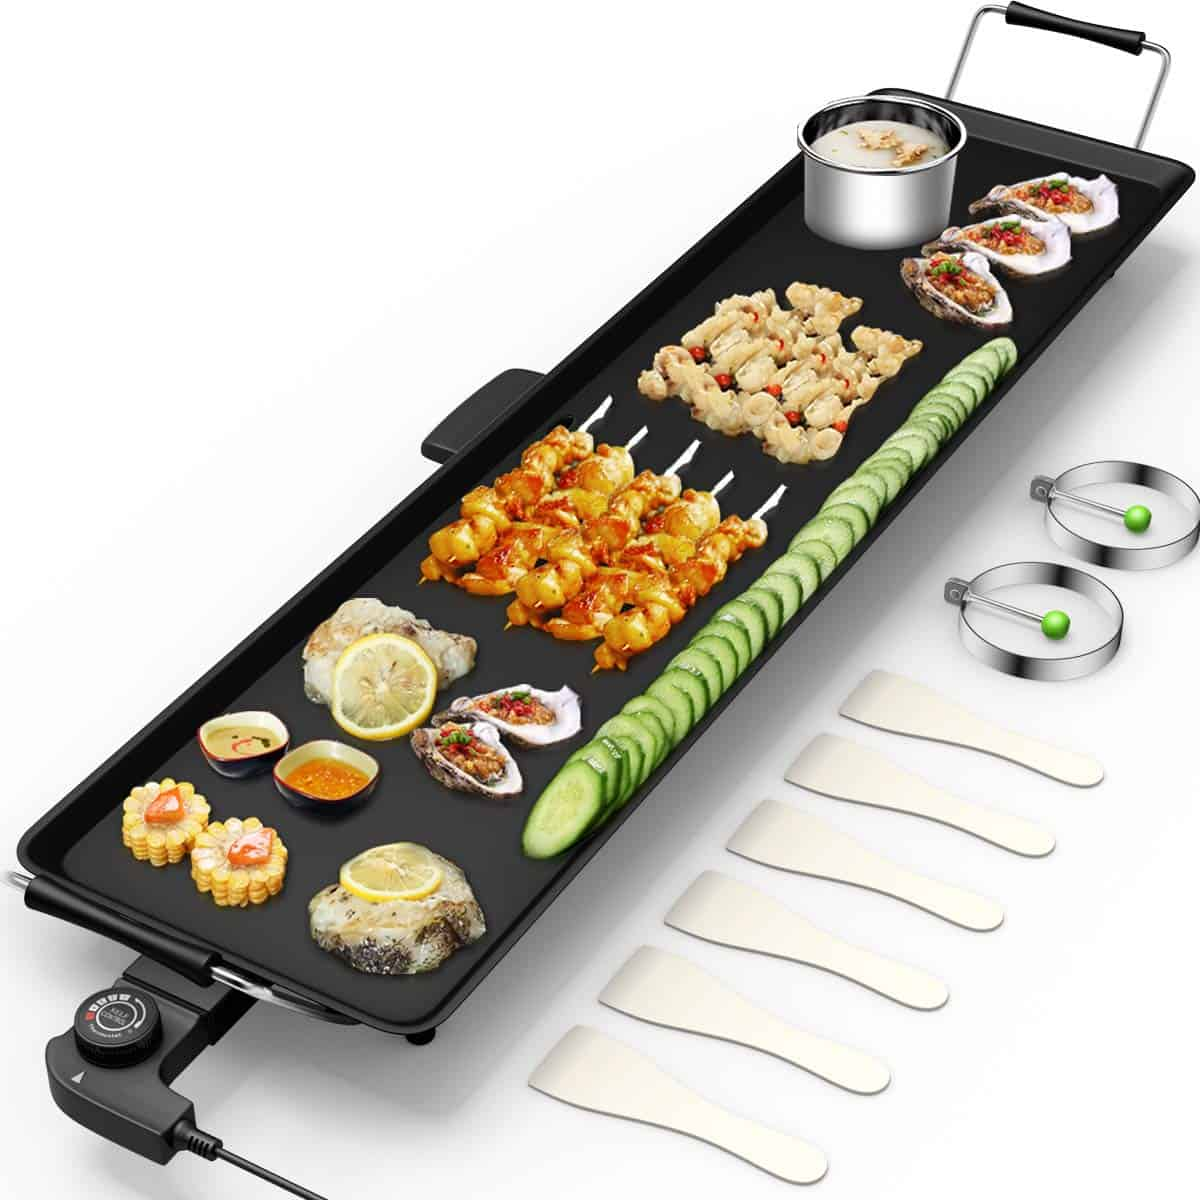 Best teppanyaki cooker costzon